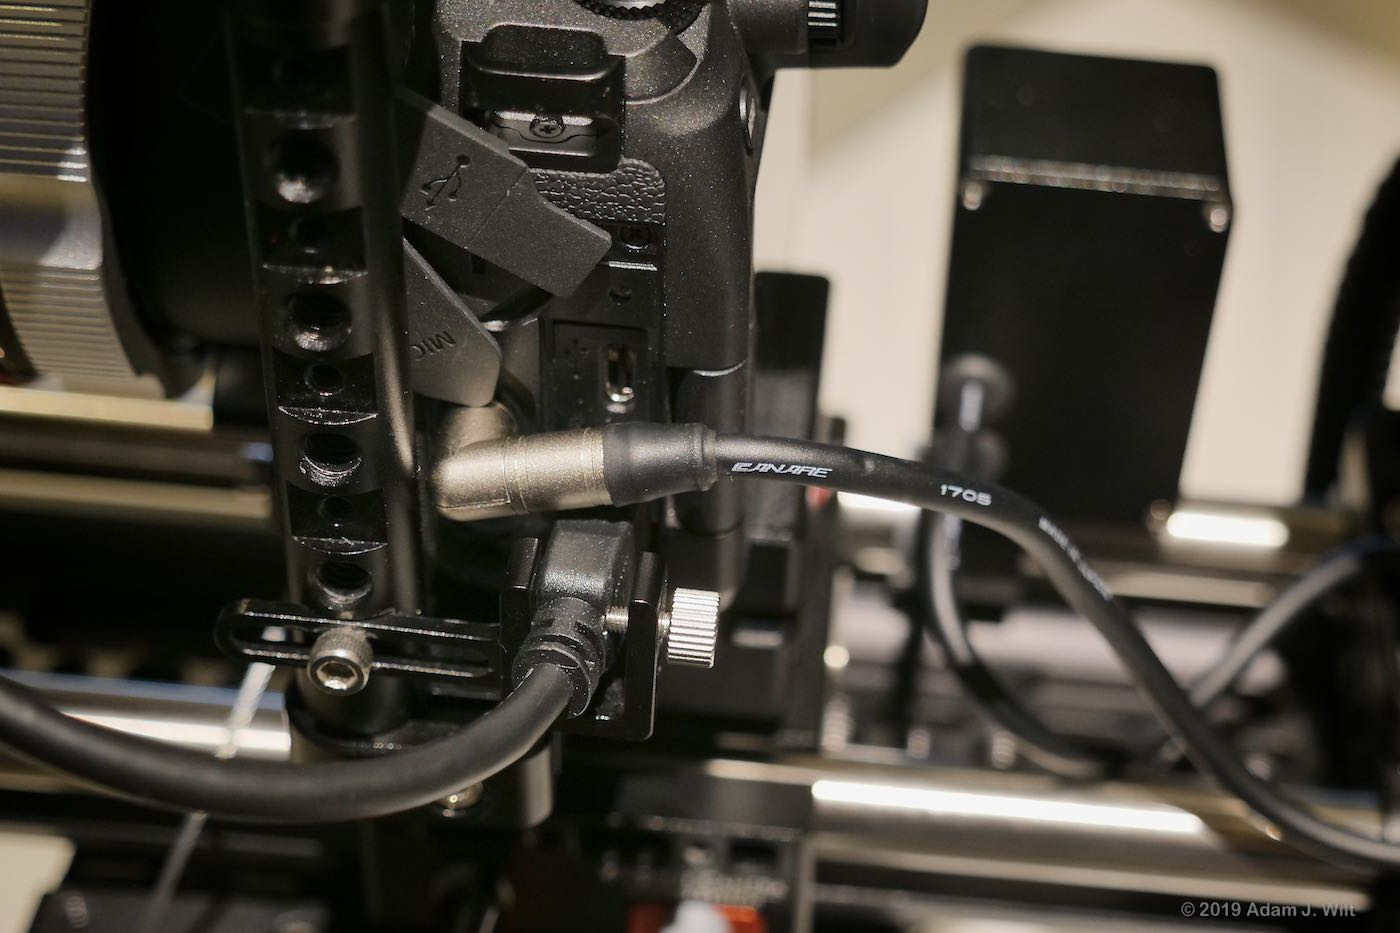 The rig's XLR breakout cable and HDMI lock